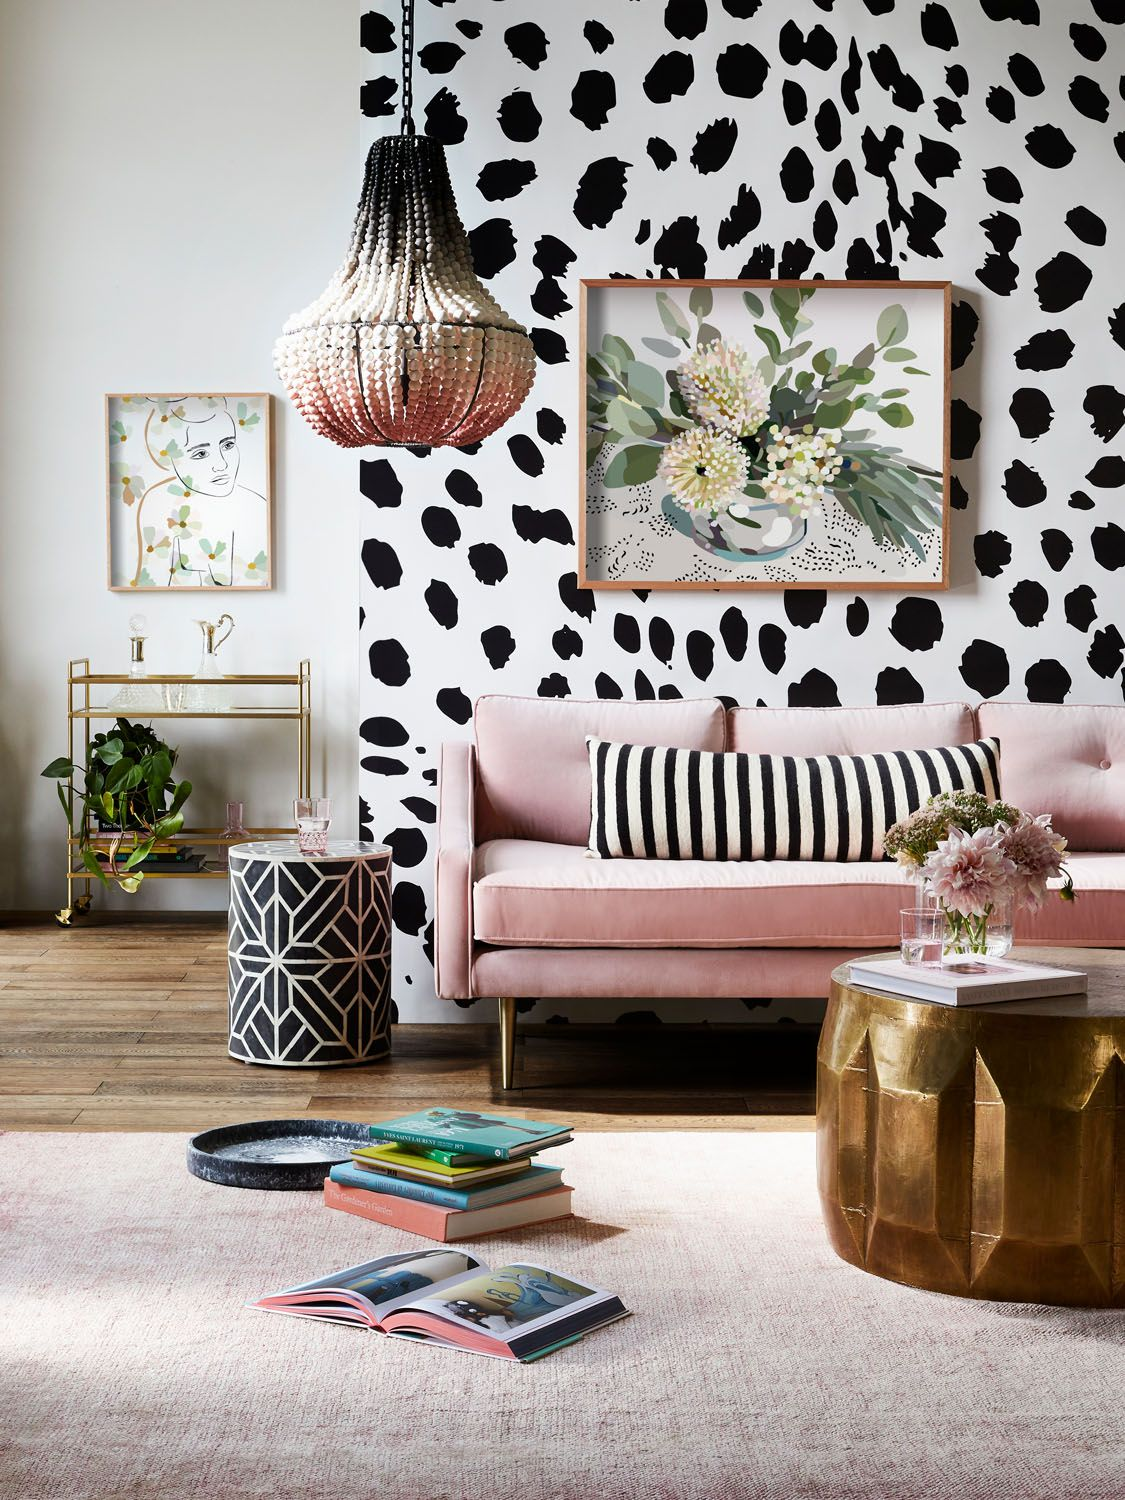 How To Make A Black And White Living Room Work_1 black and white living room How To Make A Black And White Living Room Work How To Make A Black And White Living Room Work 1